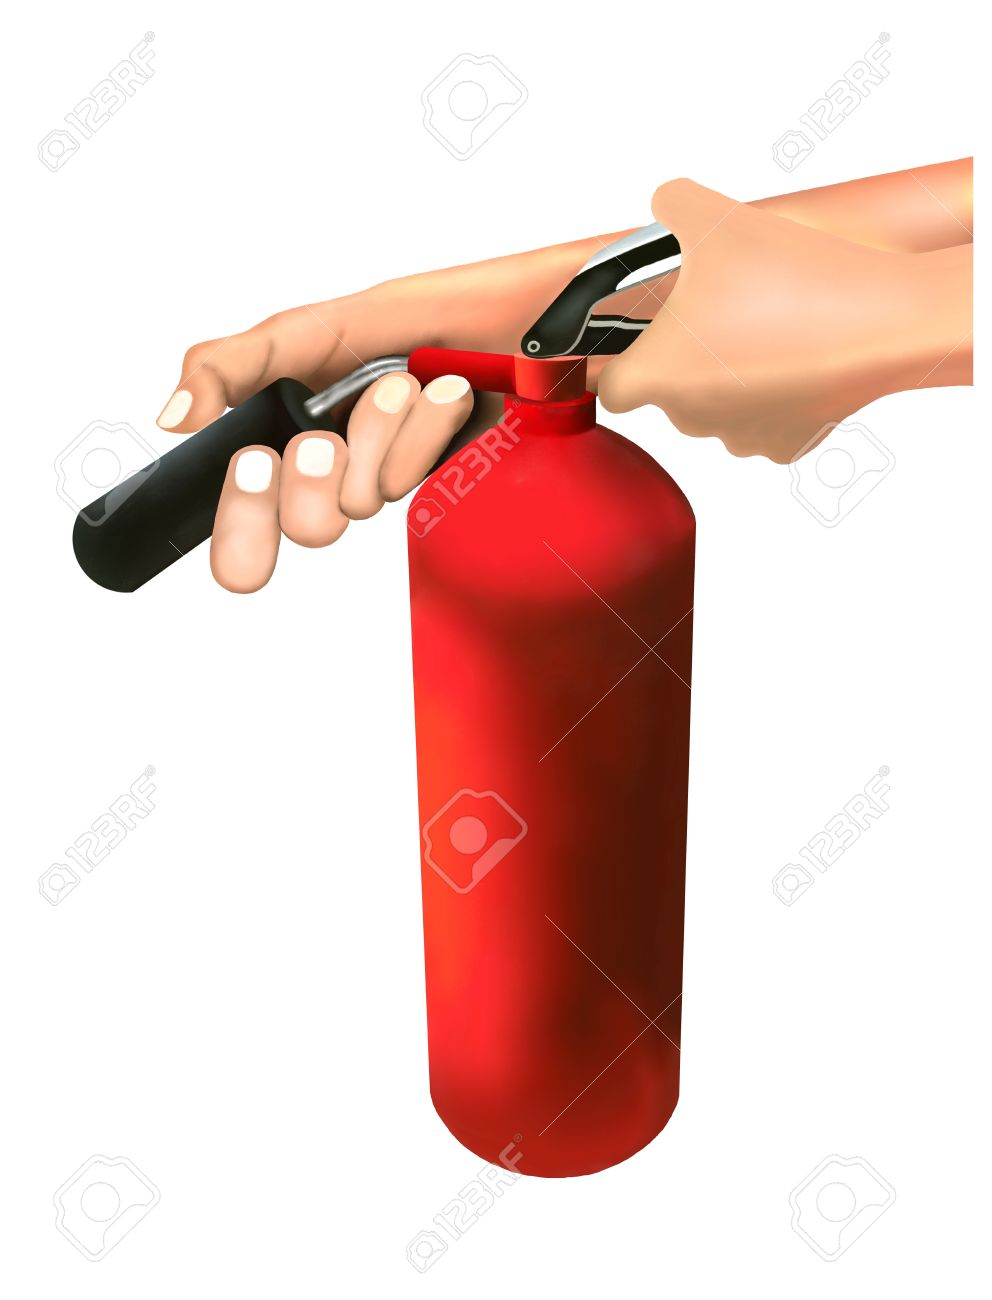 A Man Putting out Fire with Fire Extinguishers Isolated on White Background - 14724724